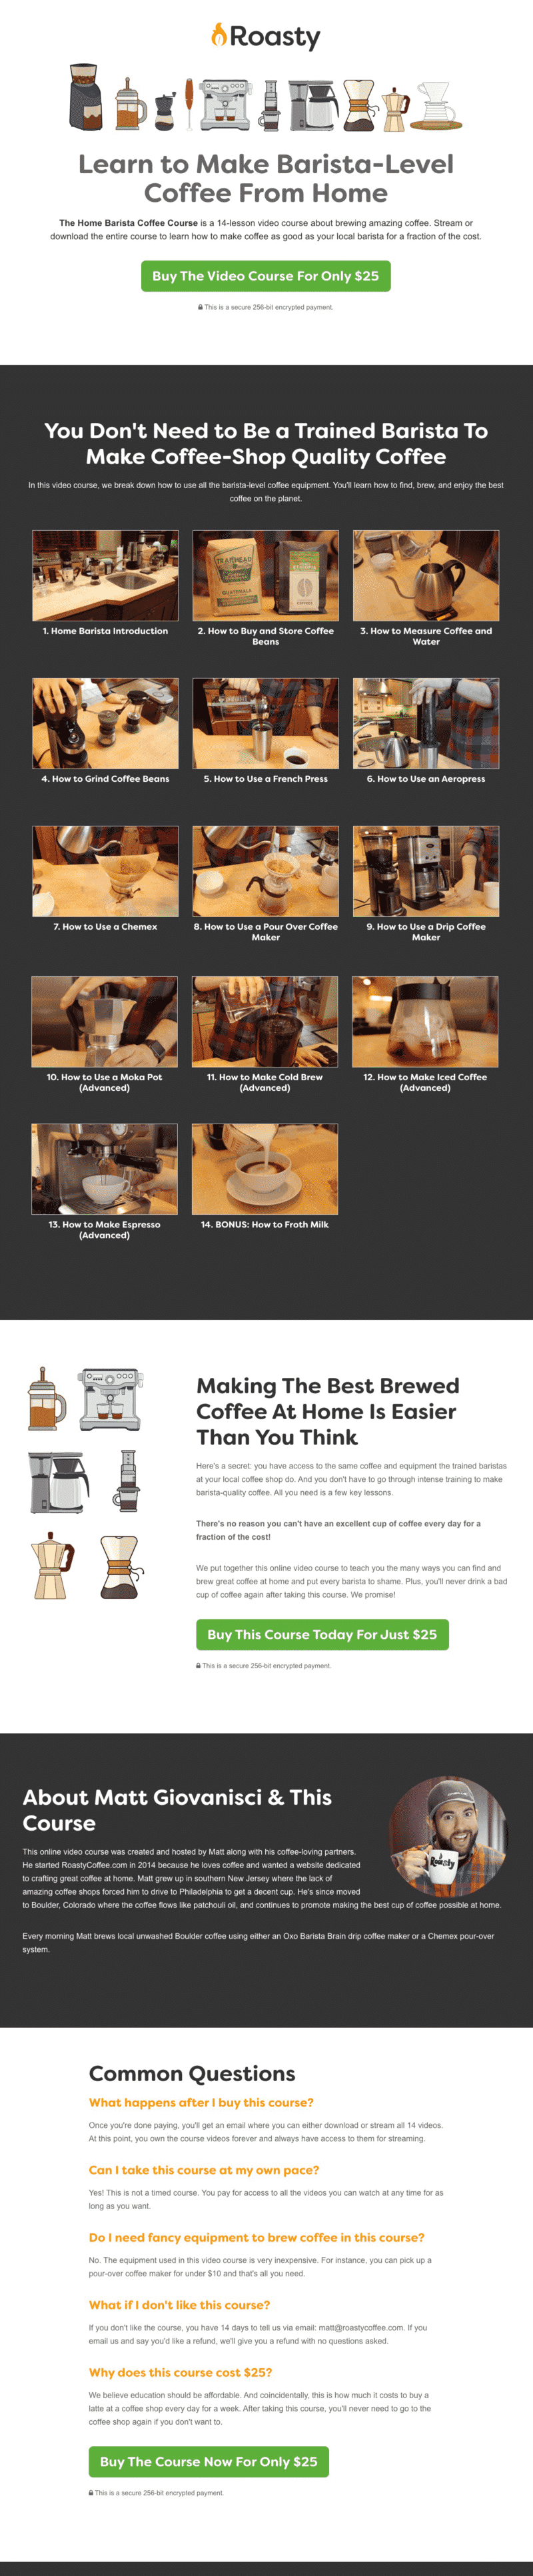 Roasty Home Barista Course Sales Page